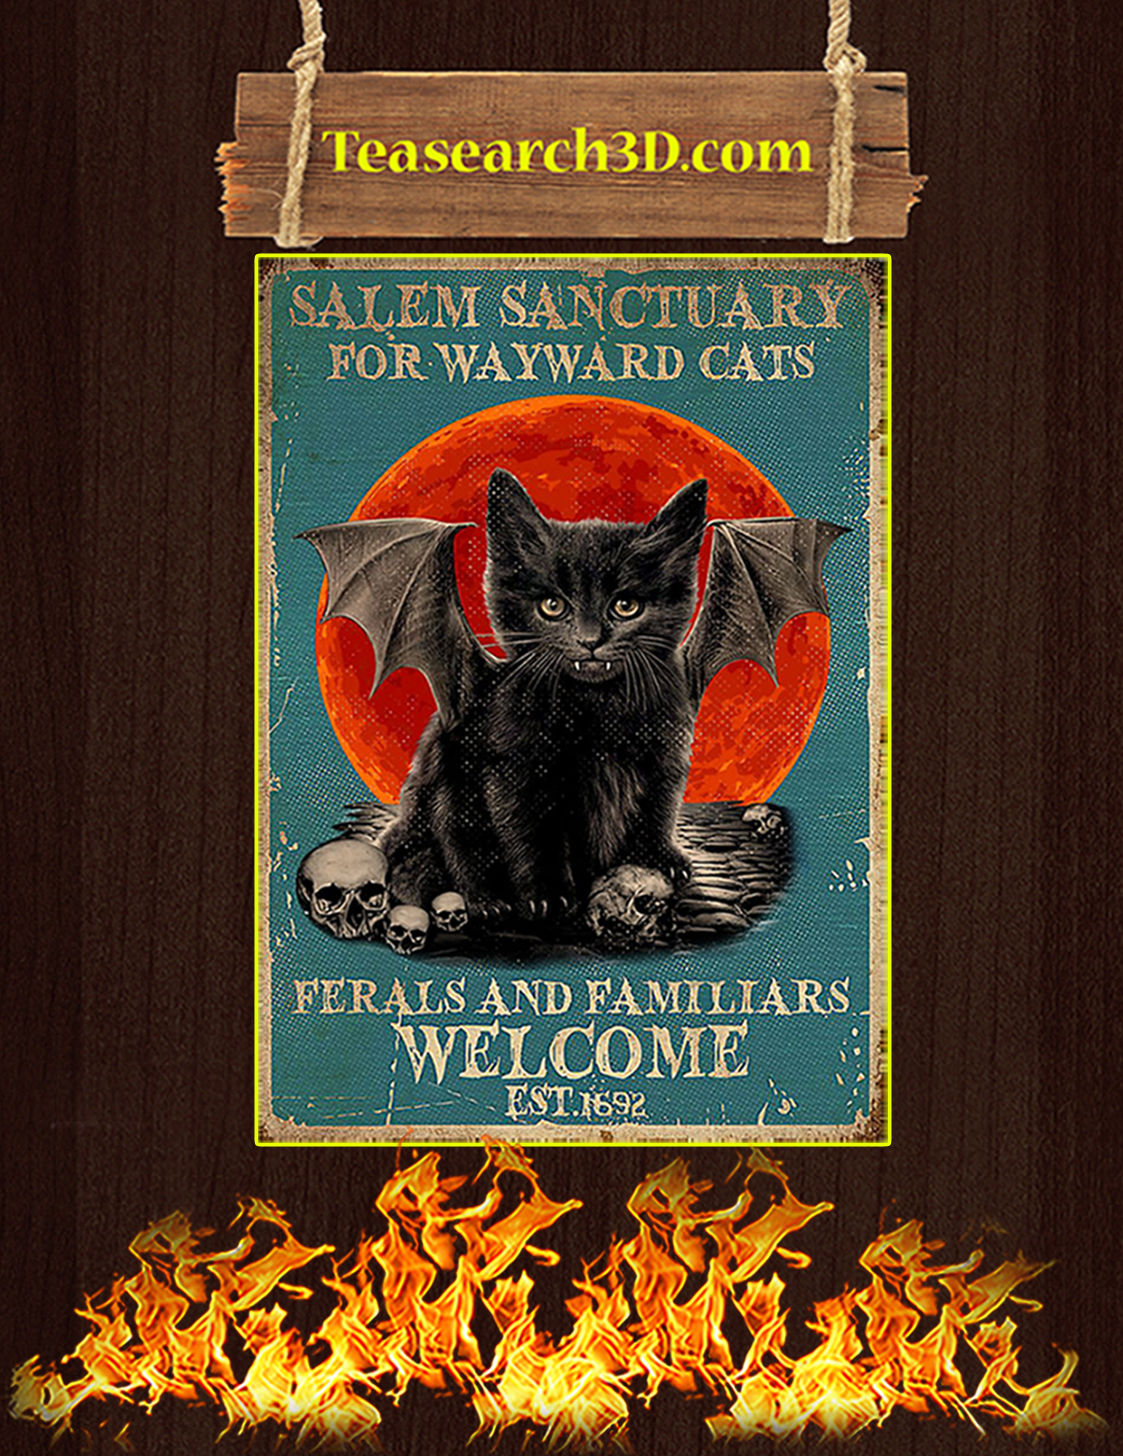 Salem sanctuary for wayward cats ferals and familiars welcome est 1962 poster A3